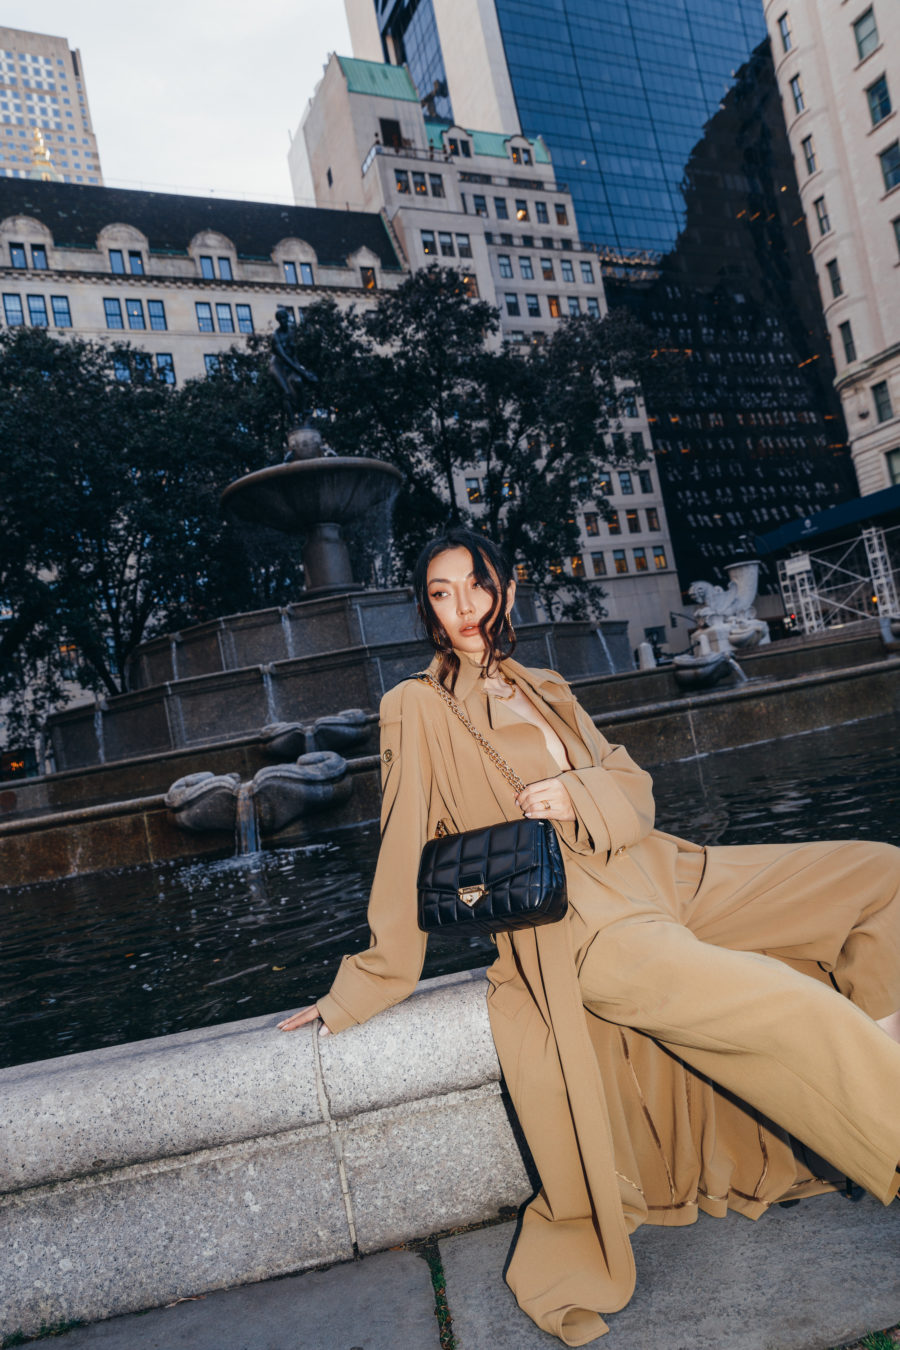 jessica wang wearing michael kors outfit and sharing black friday sales // Jessica Wang - Notjessfashion.com